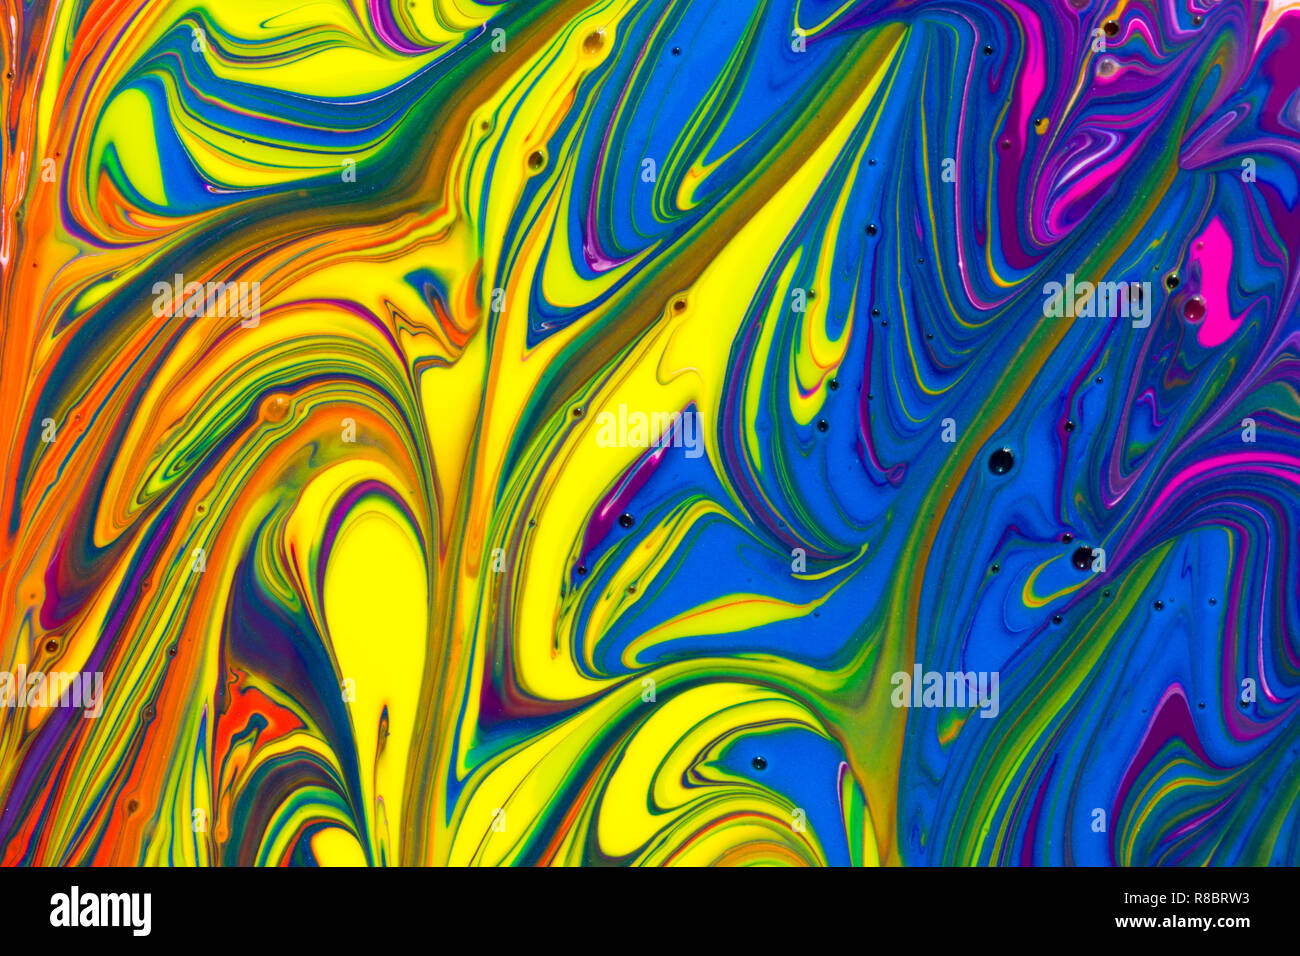 A Colourful Multicoloured Rainbow Abstract Background Of Red Orange Yellow Green Blue Purple Pink And White Liquid Paint Swirls Stock Photo Alamy